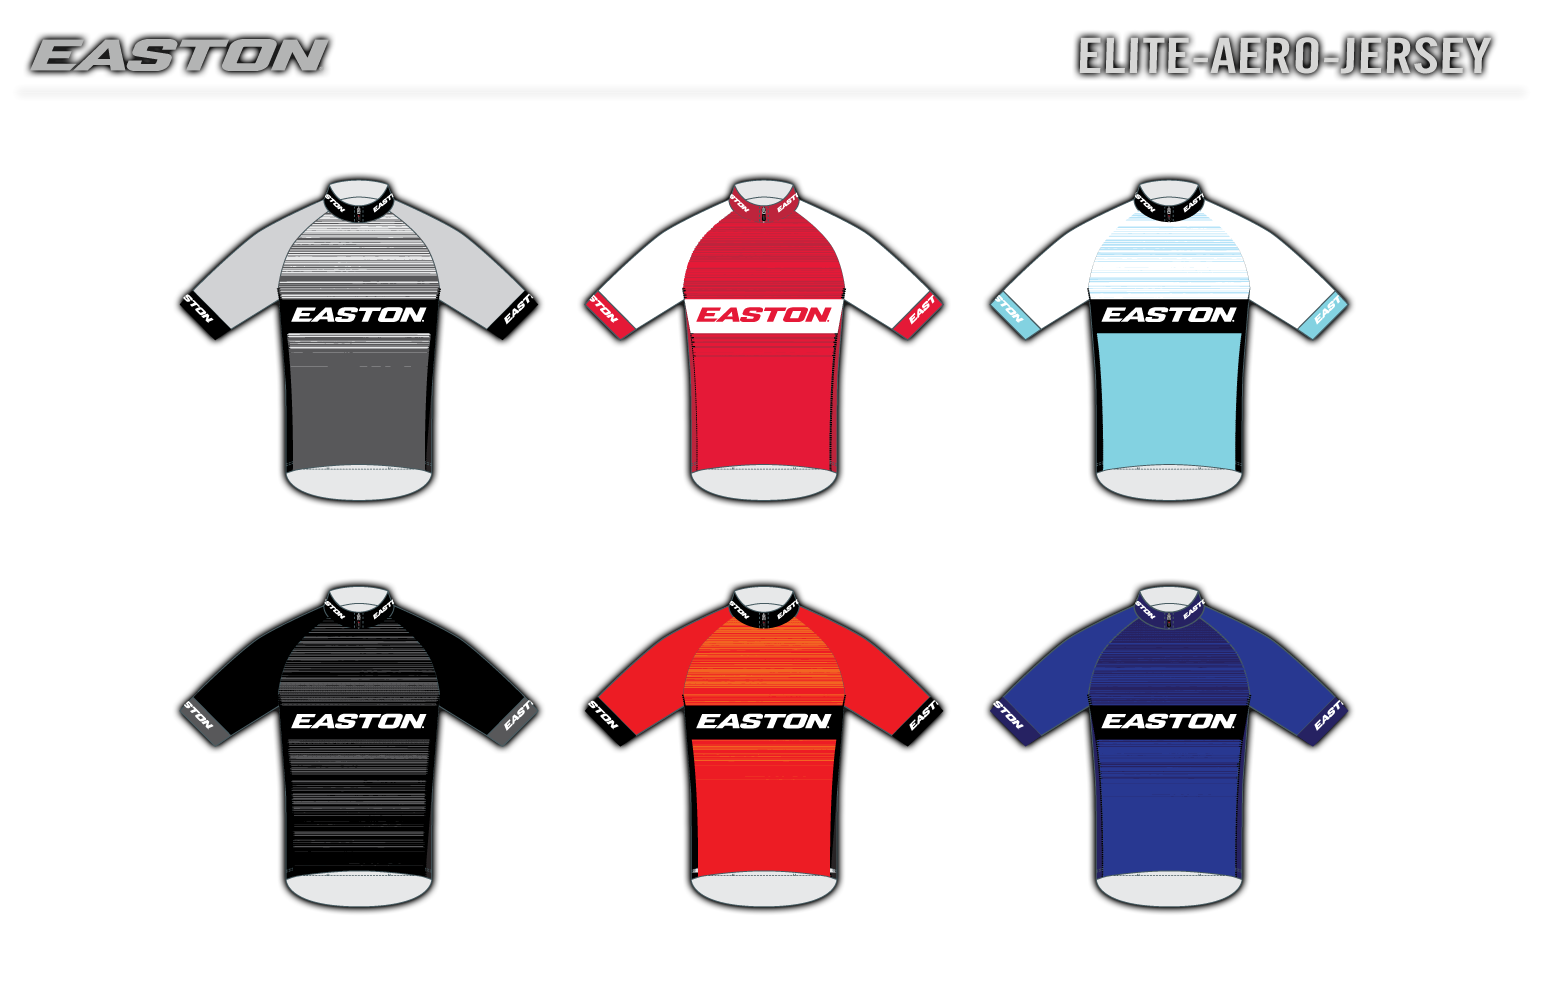 Easton Cycling Kits